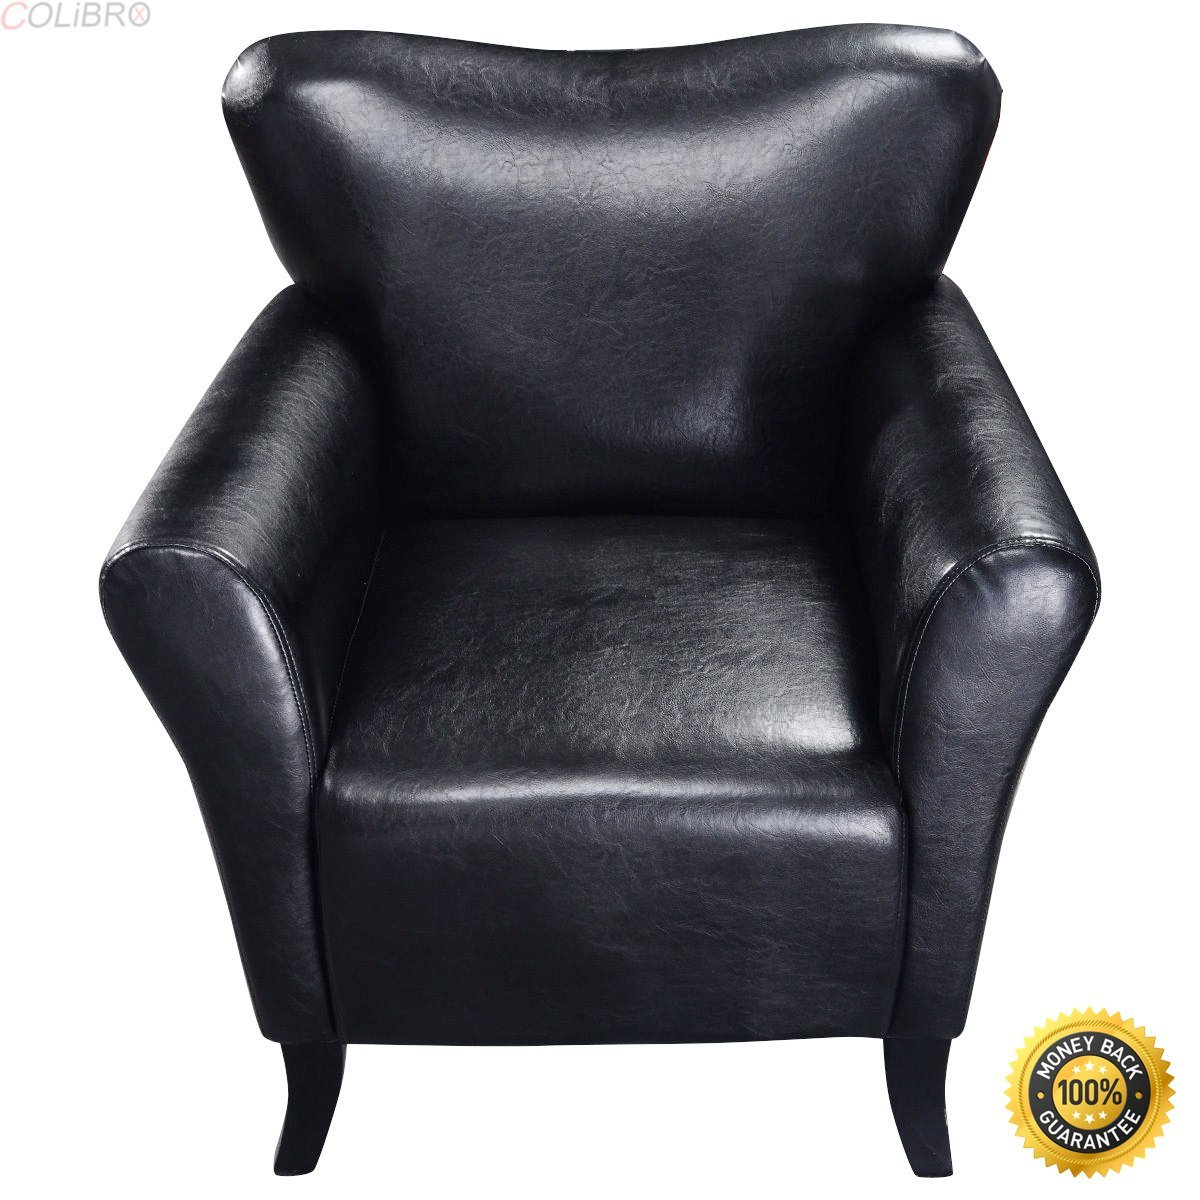 COLIBROX--New Modern PU Leather Leisure Arm Chair Single Sofa Seat Furniture Black,armchair cheap,Soft Modern Arm Chair,cheap living room chairs,living room chair,chairs for sale cheap